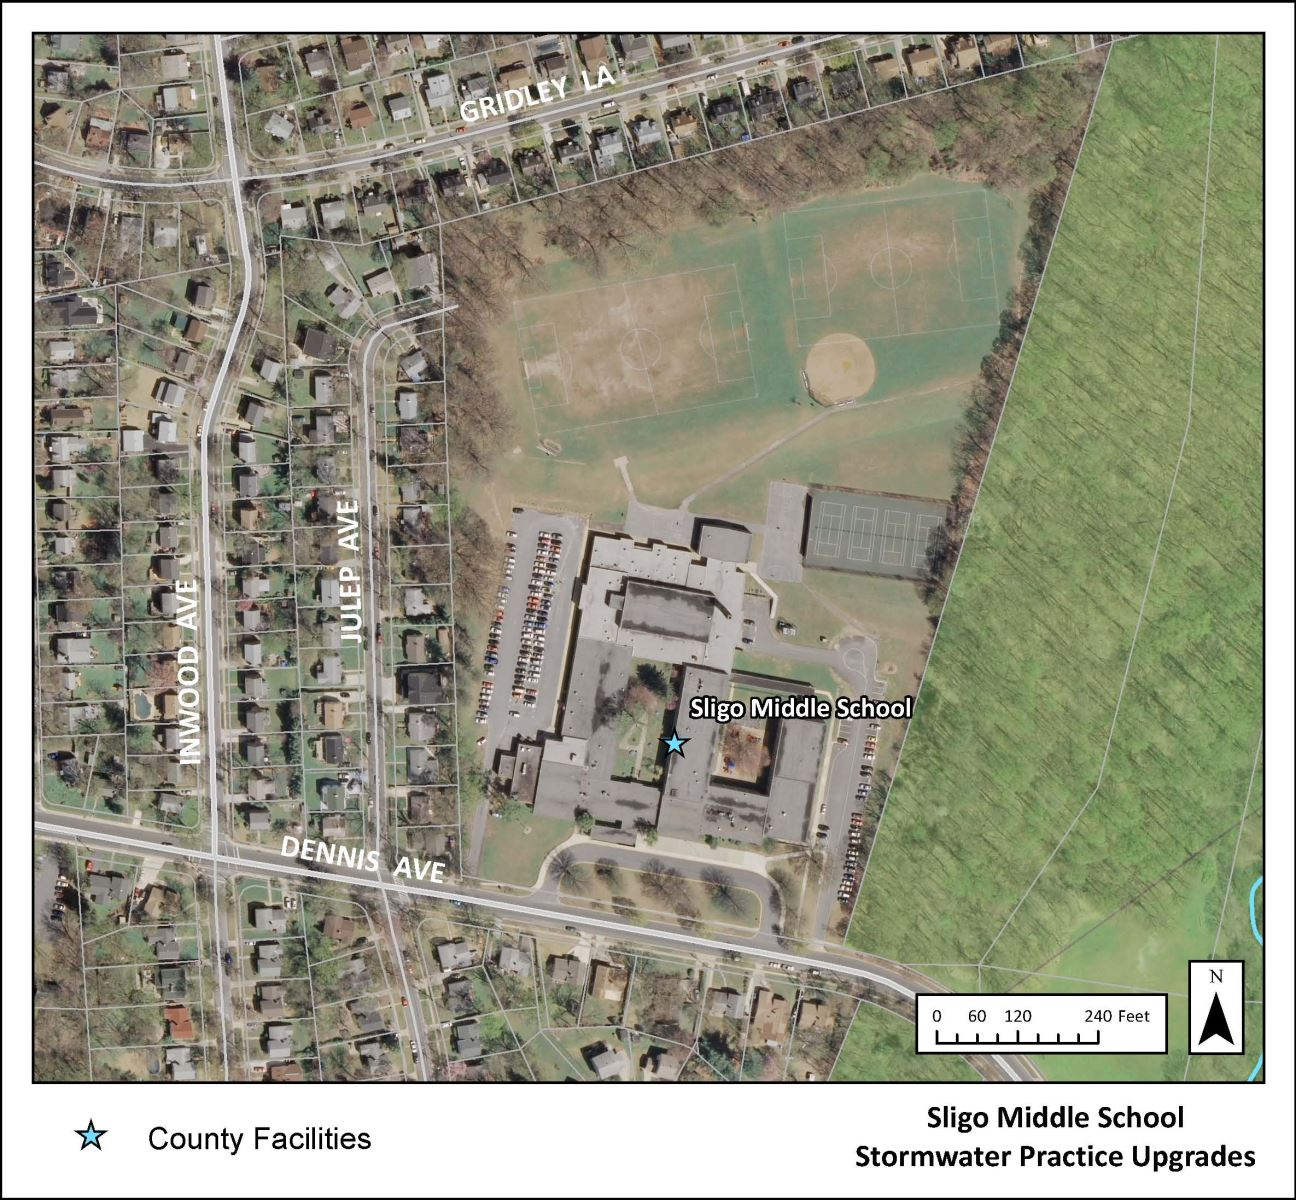 Image of Sligo Middle School